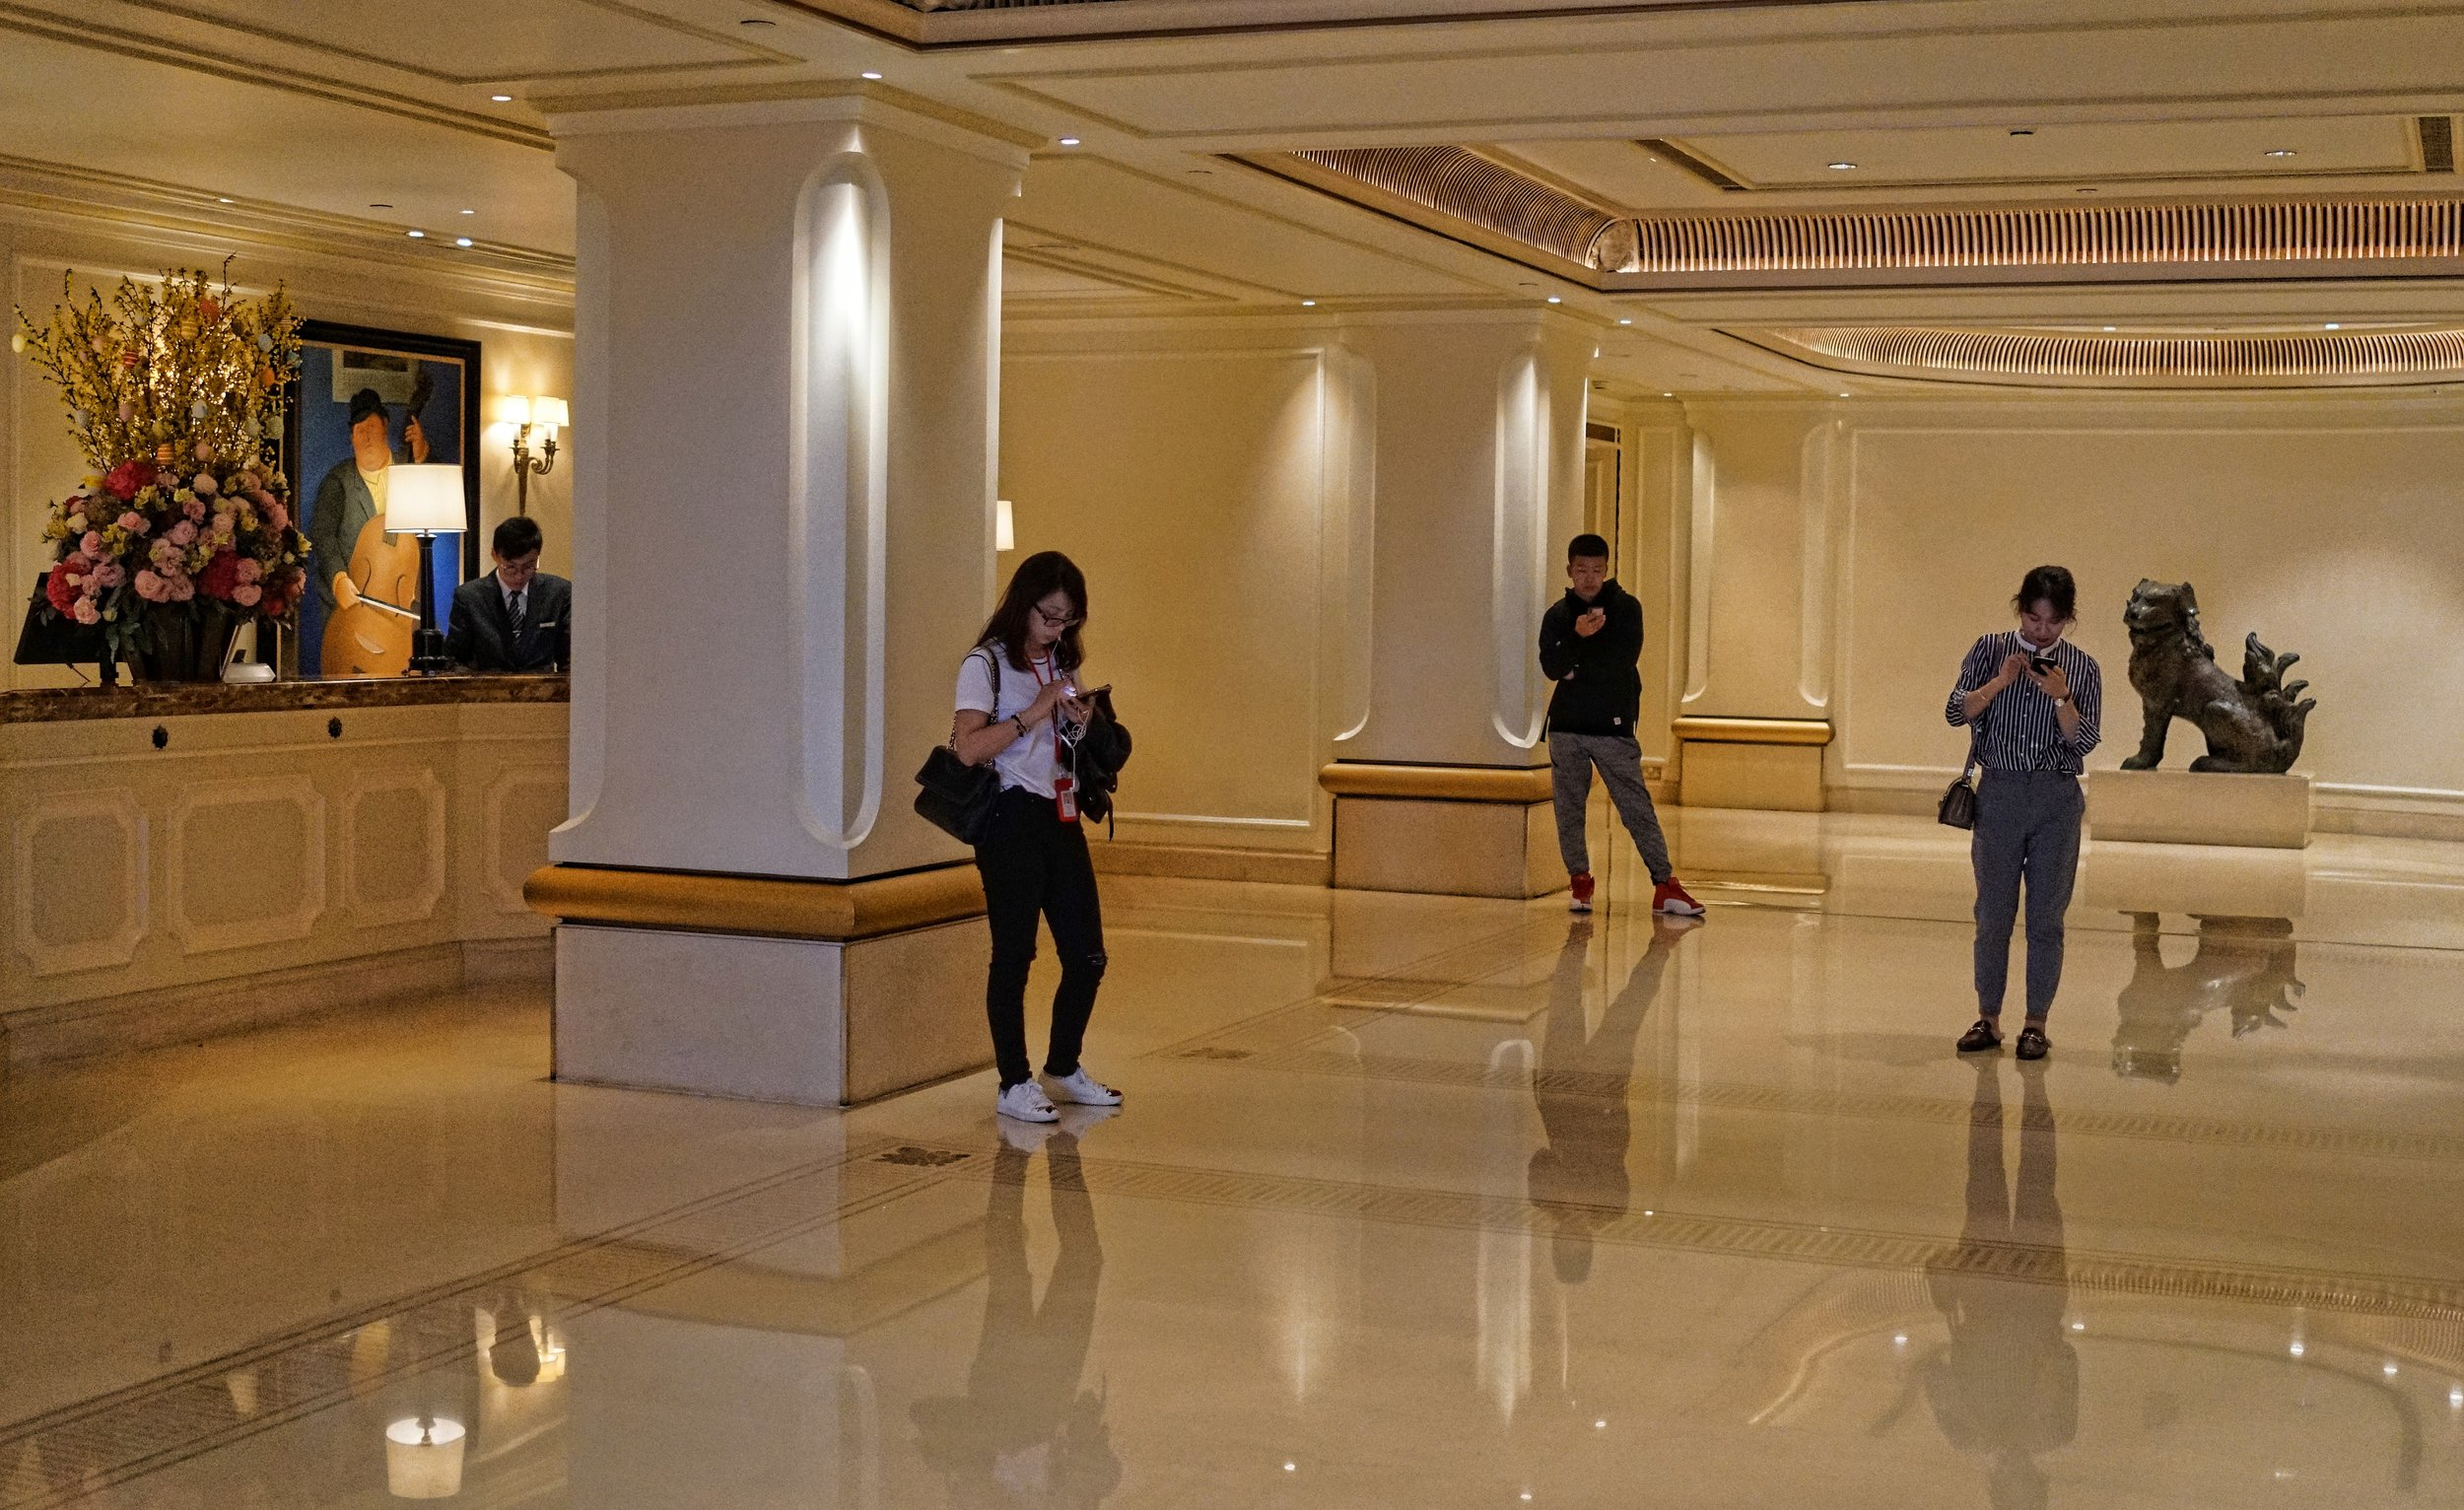 Why book a coach tour through the Hotel? why book a tour on an online platform? | book your last minute Premium Private Tour of Hong Kong directly with Jamie -